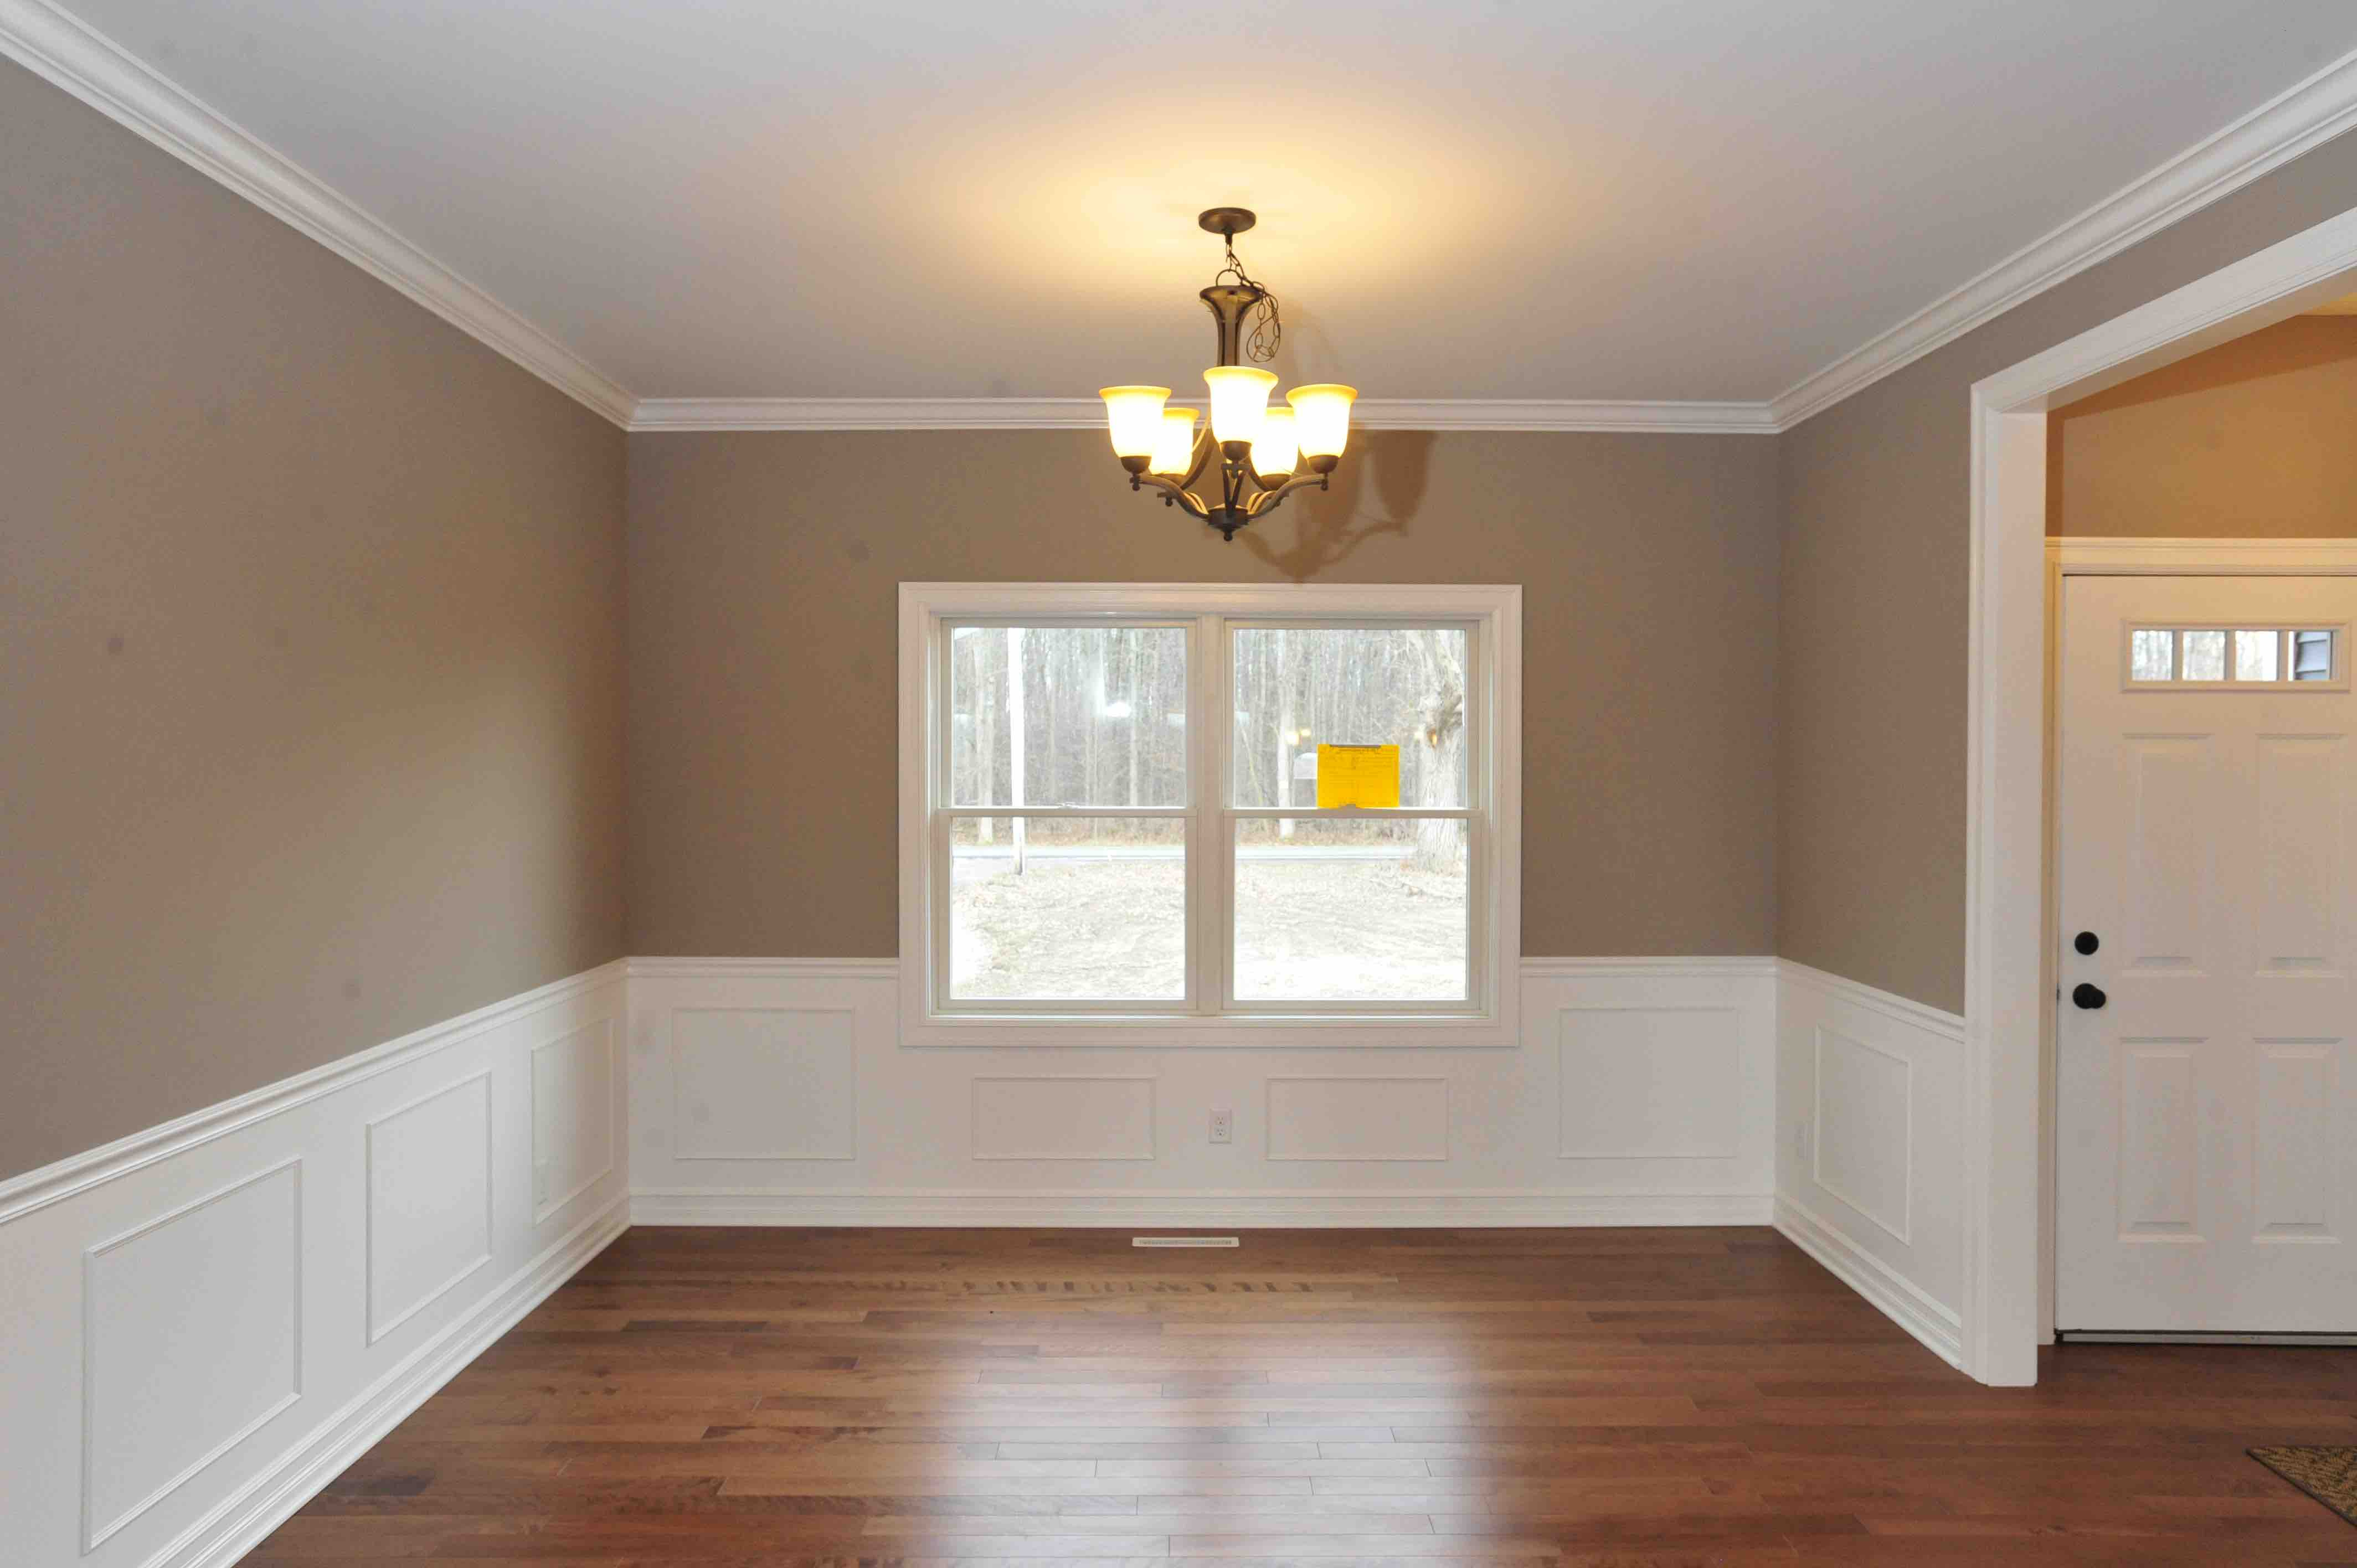 Image gallery lps custom homes for Dining room wall molding ideas